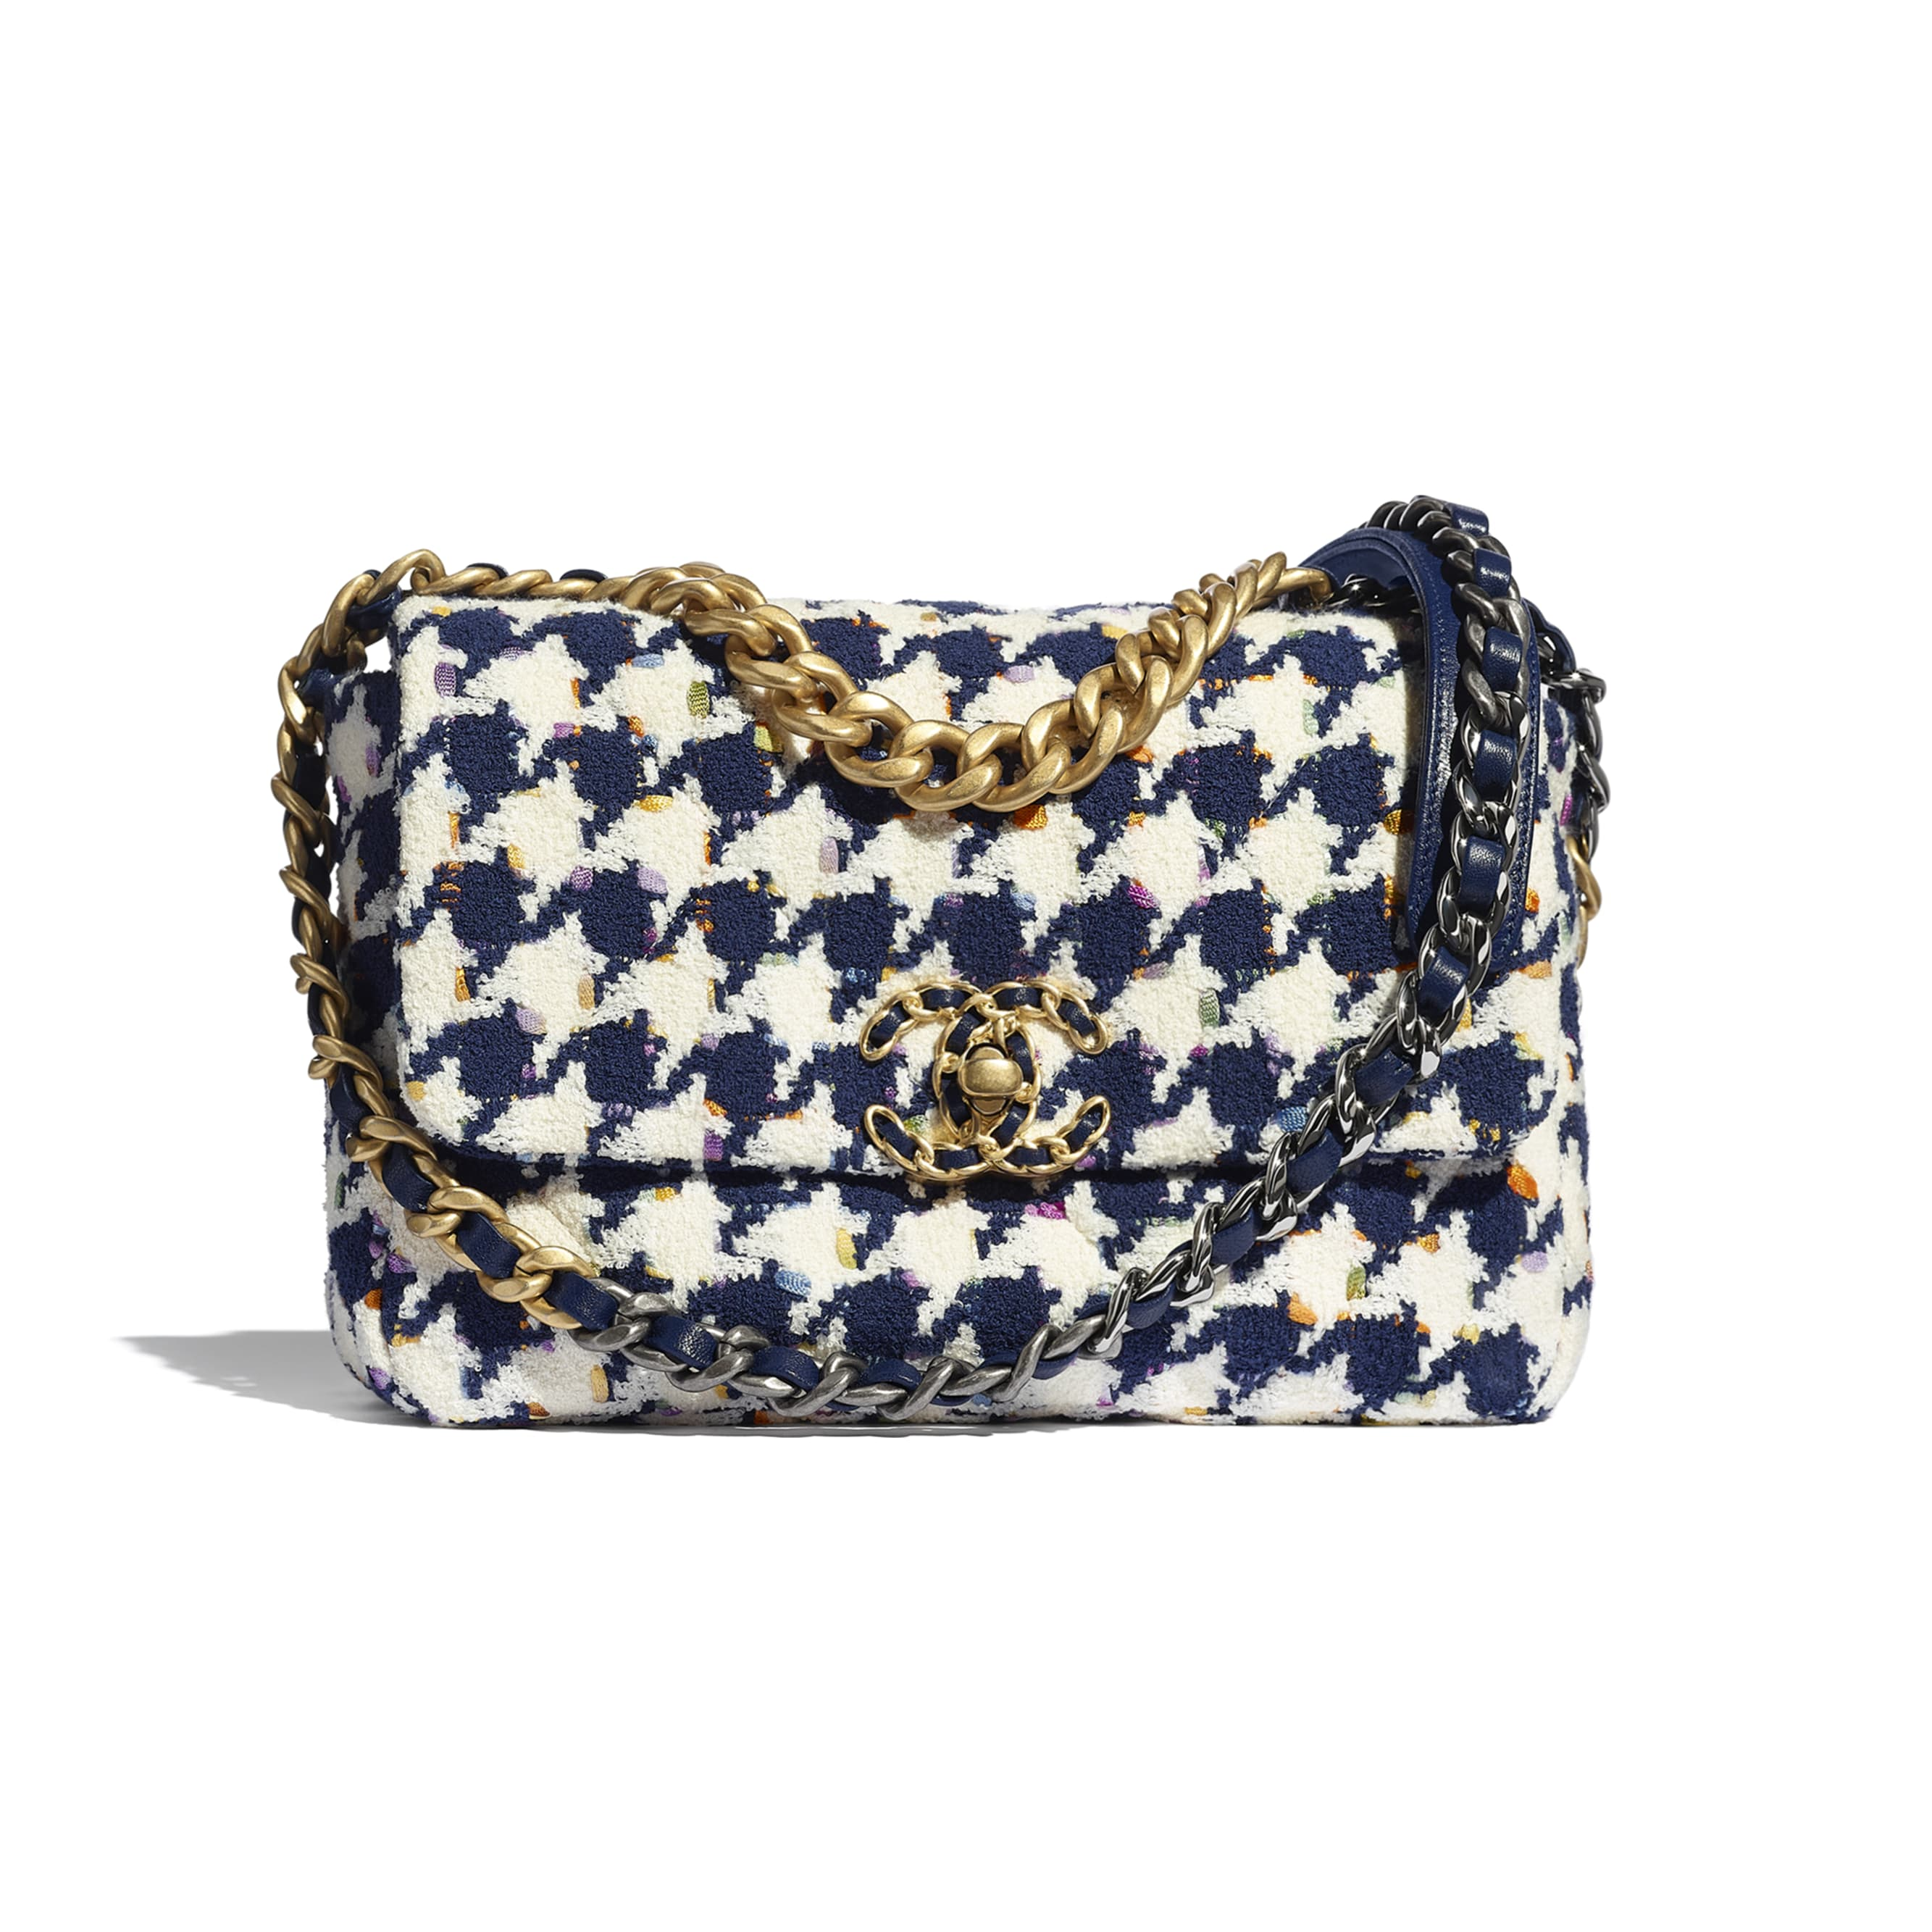 CHANEL 19 Flap Bag - Ecru, Navy Blue & Multicolour - Tweed, Gold-Tone, Silver-Tone & Ruthenium-Finish Metal - CHANEL - Default view - see standard sized version